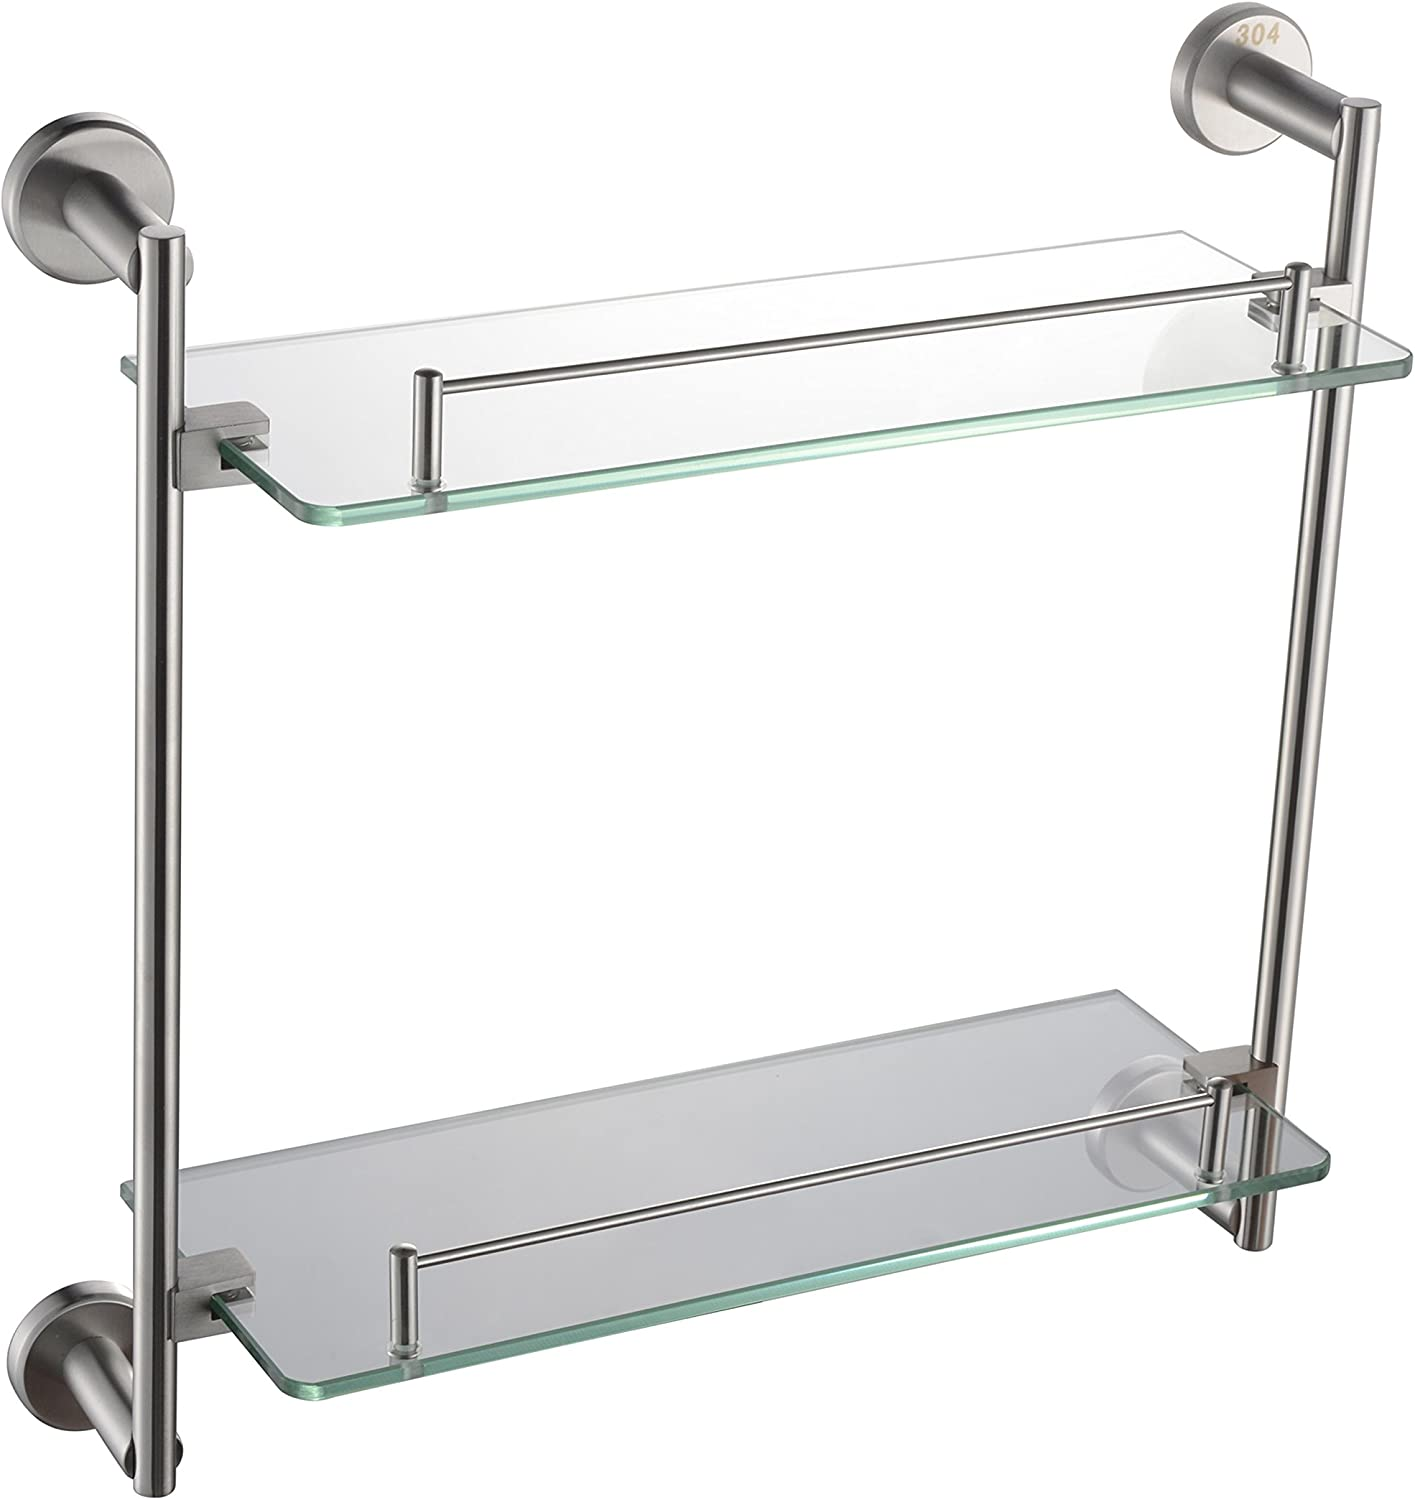 NEWBIAO Wall Mounted Glass Double Shelf,Bathroom SUS304 Stainless Steel,Nickel